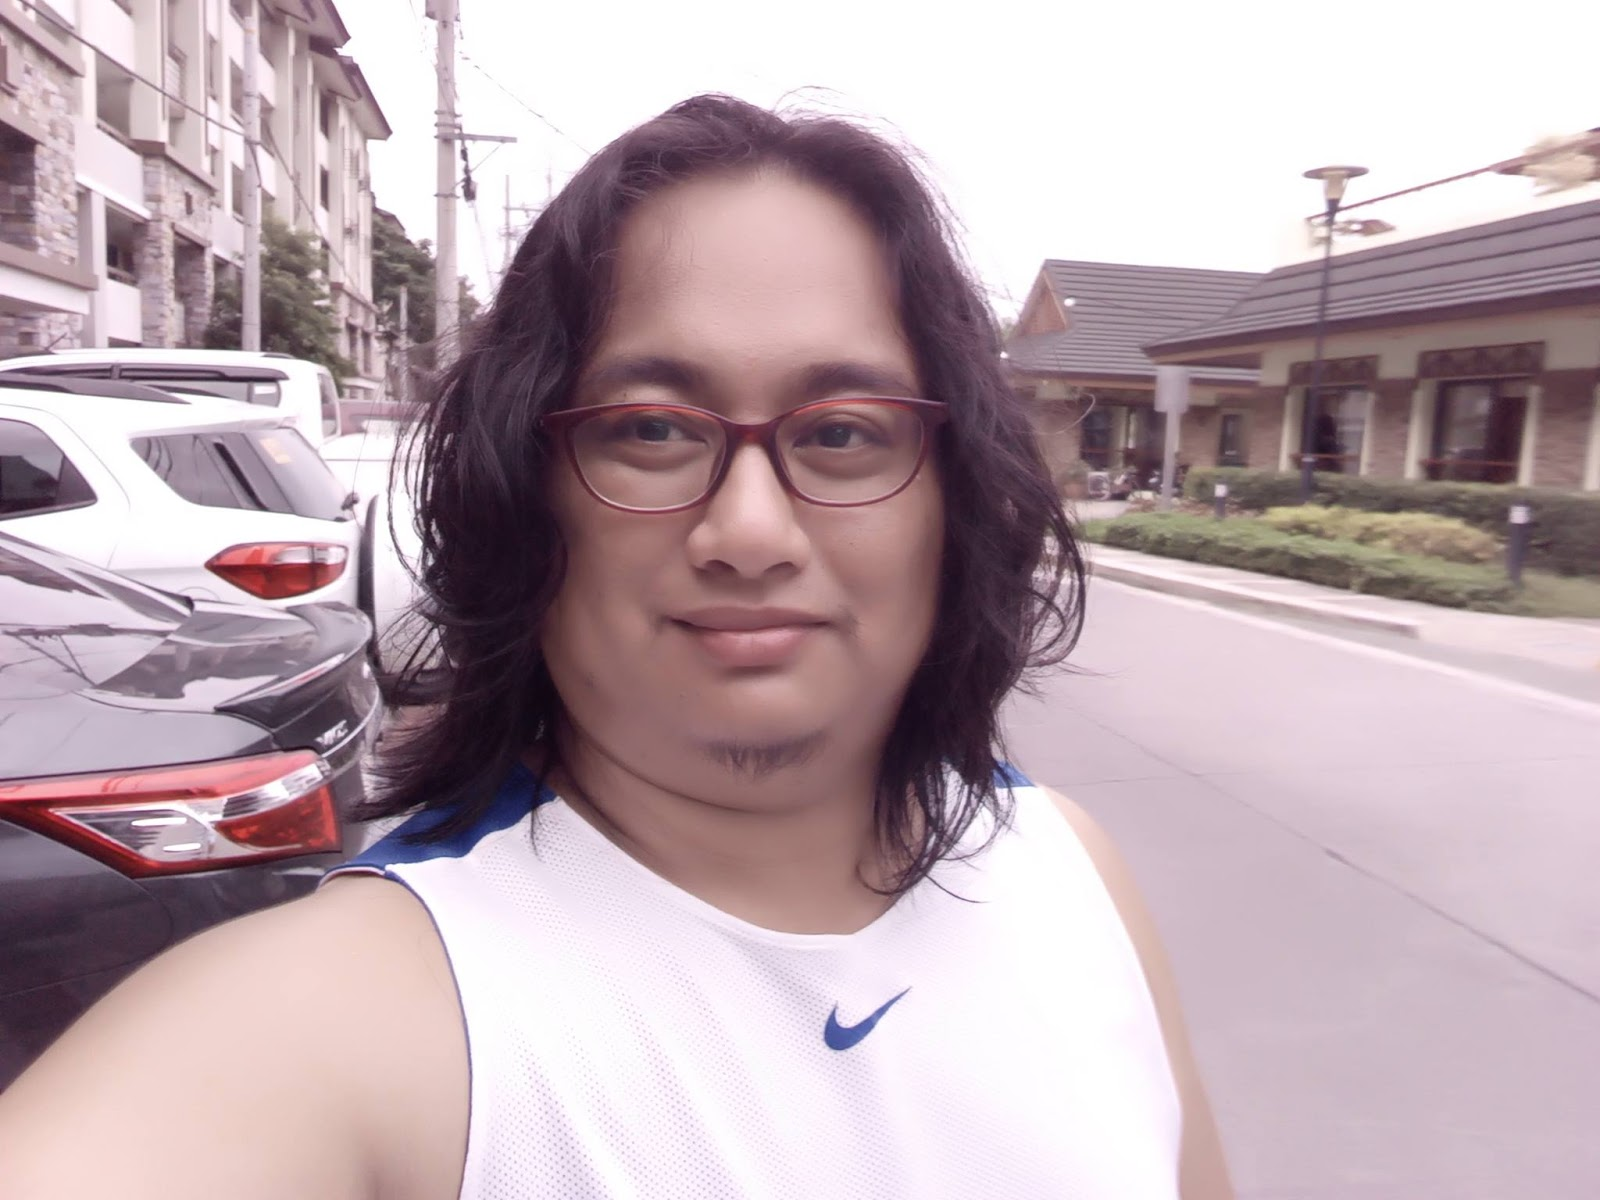 Doogee Mix Camera Review - Selfie